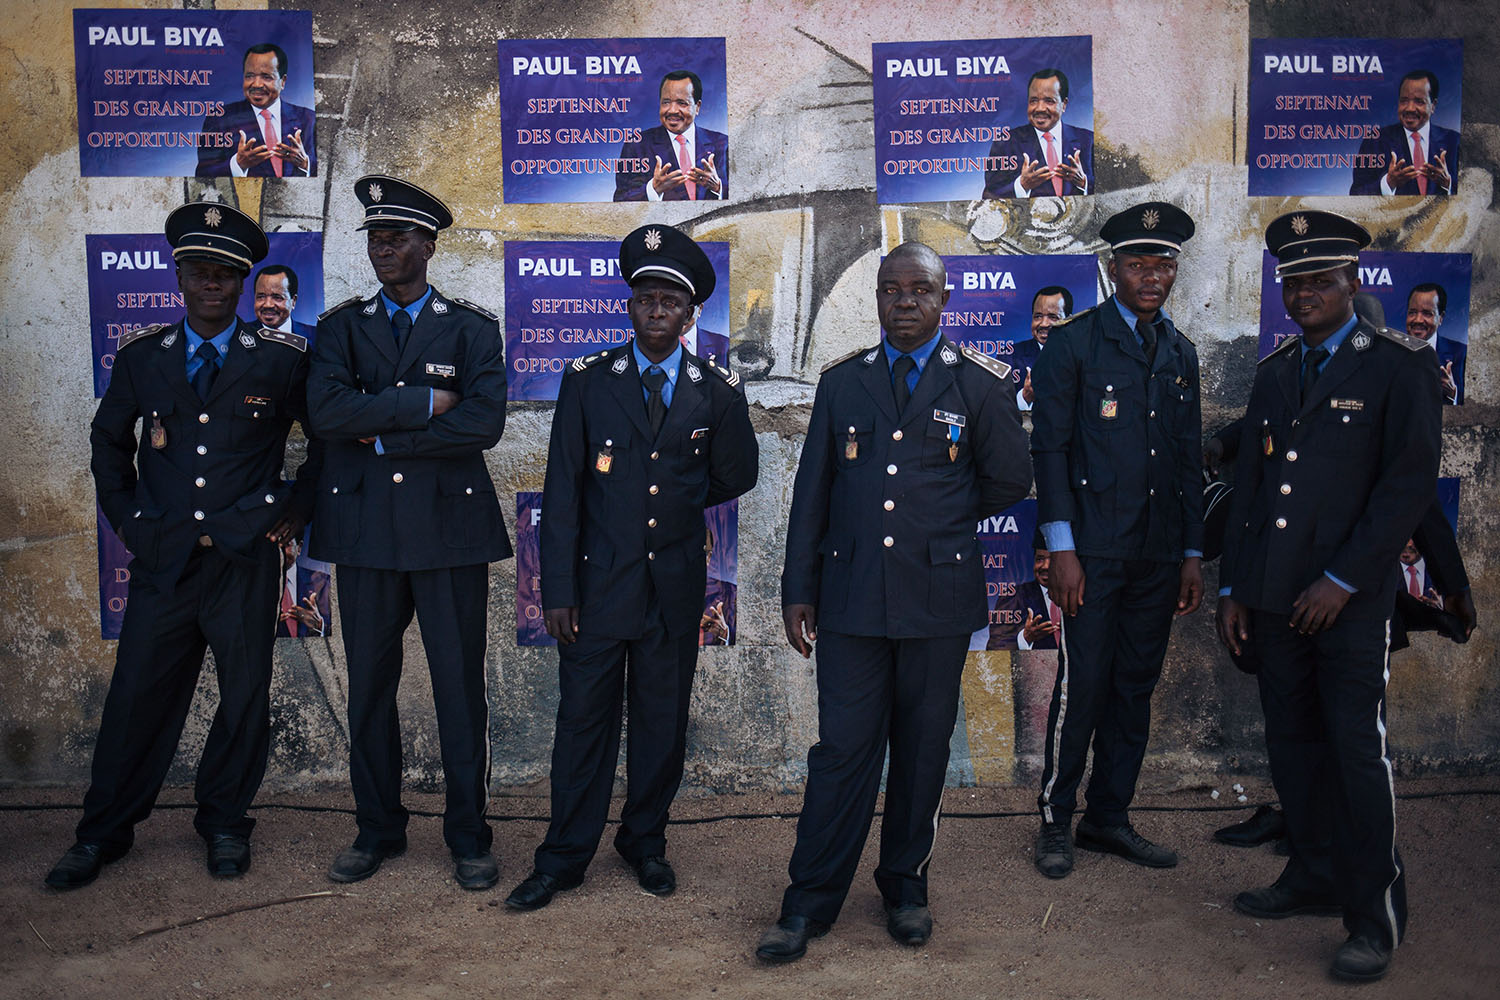 Policemen wait in the shade after the electoral meeting in front of posters for President Paul Biya in Maroua on Sept. 29, 2018.